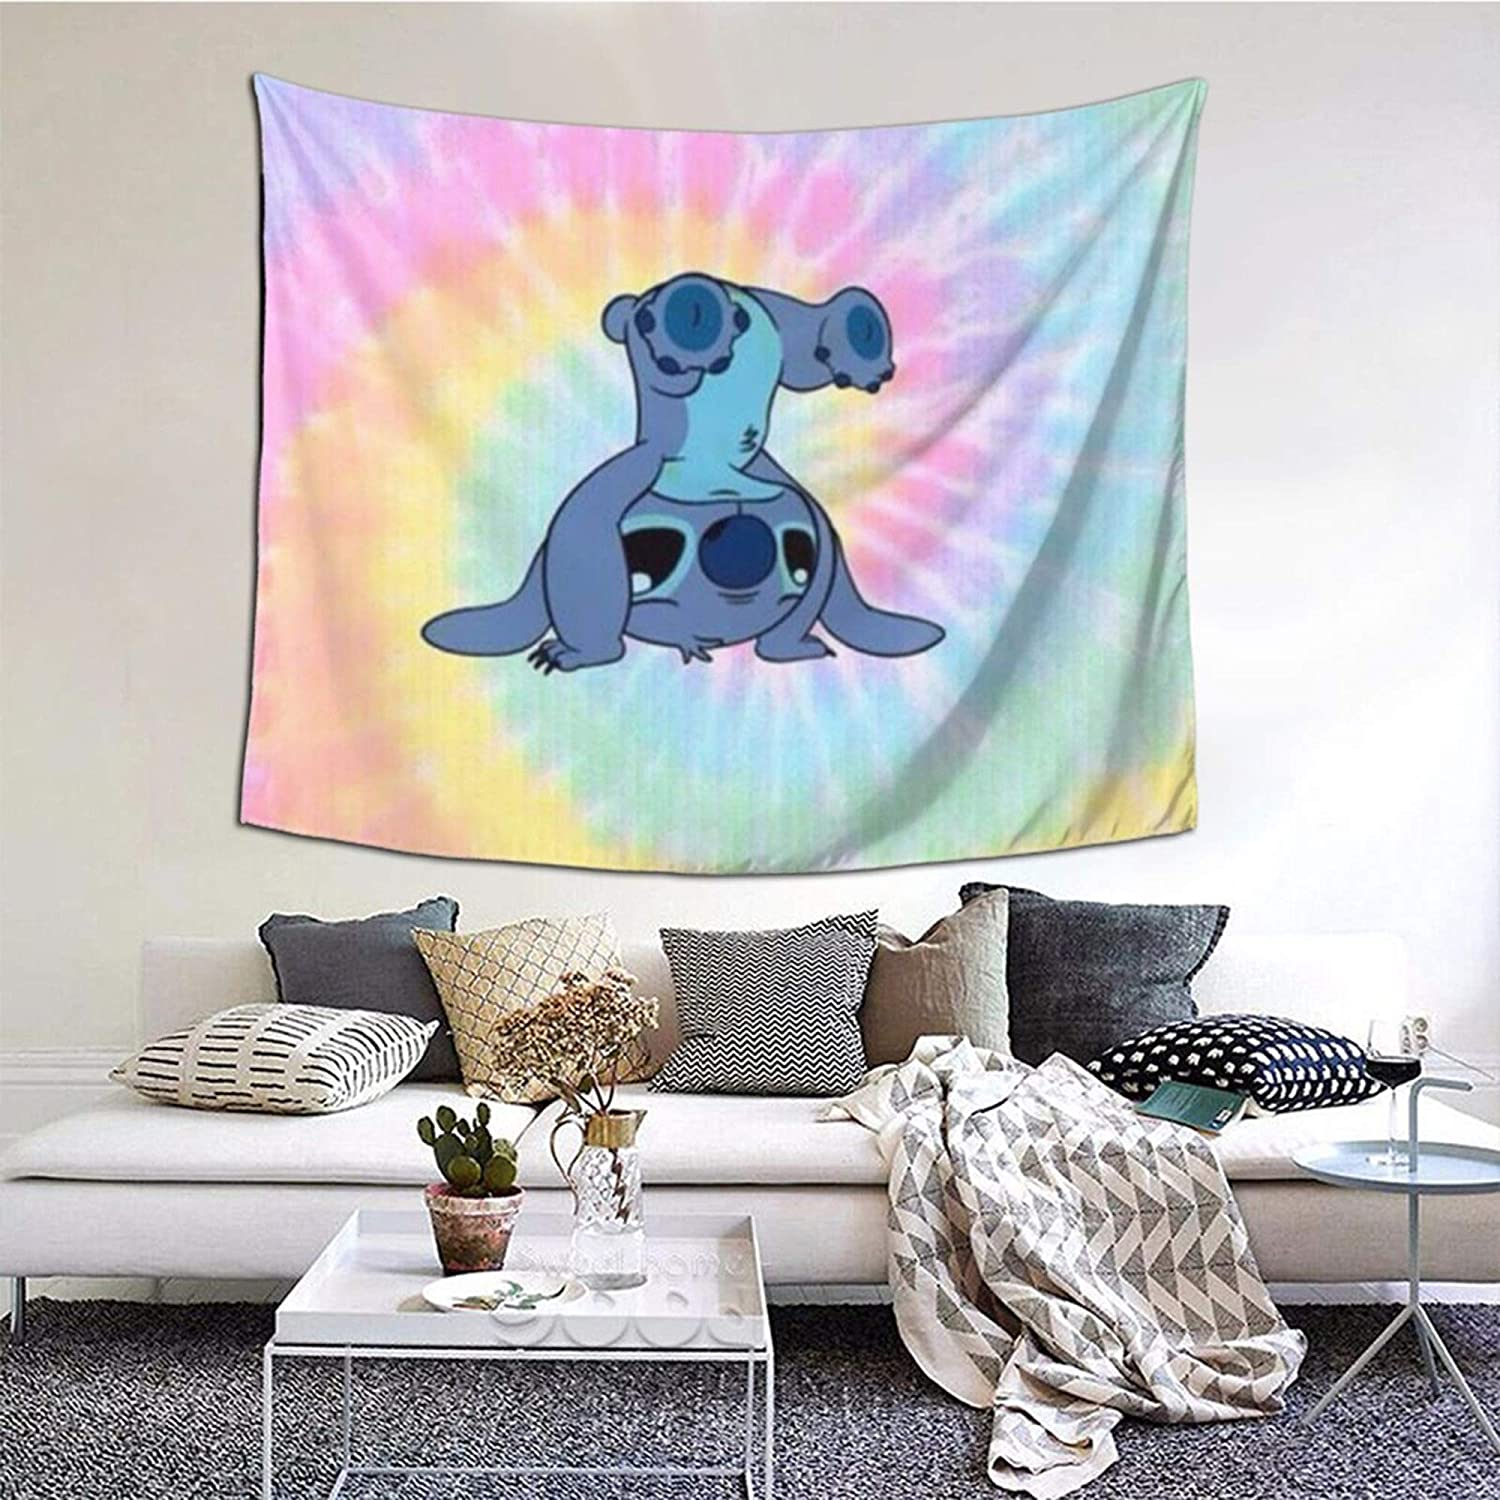 Zebraprime Arts Li-lo And S-tit-ch Wall Tapestry With Art Nature Home Decorations For Living Room Bedroom Dorm Decor 60X51 Inches